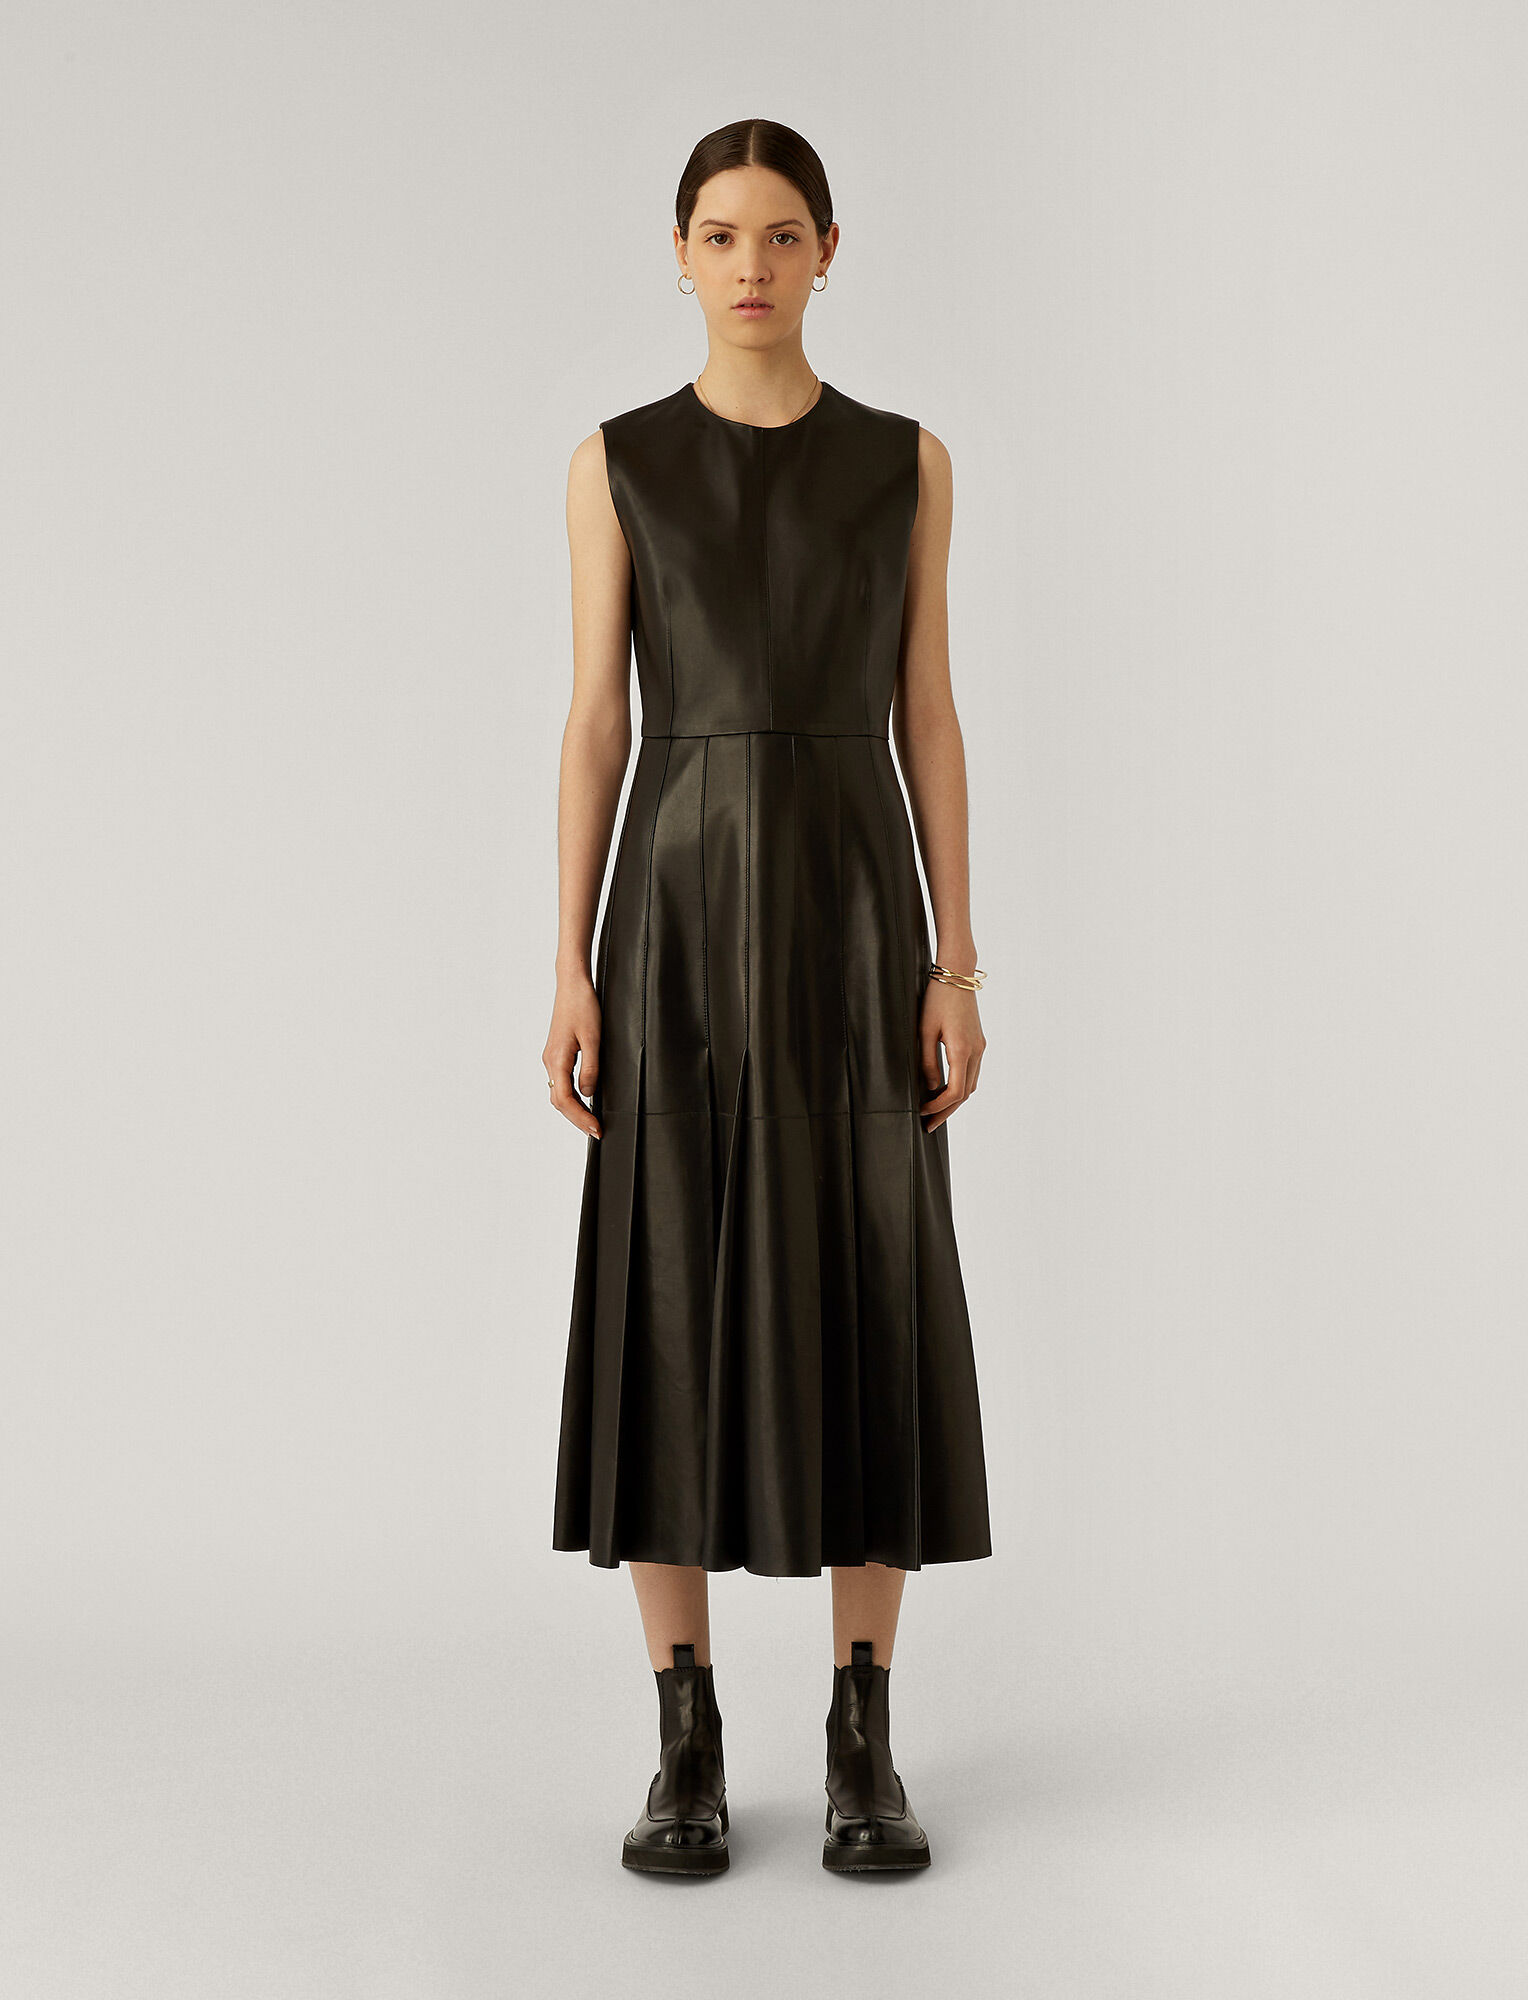 Joseph, Demry Nappa Leather Dress, in Black